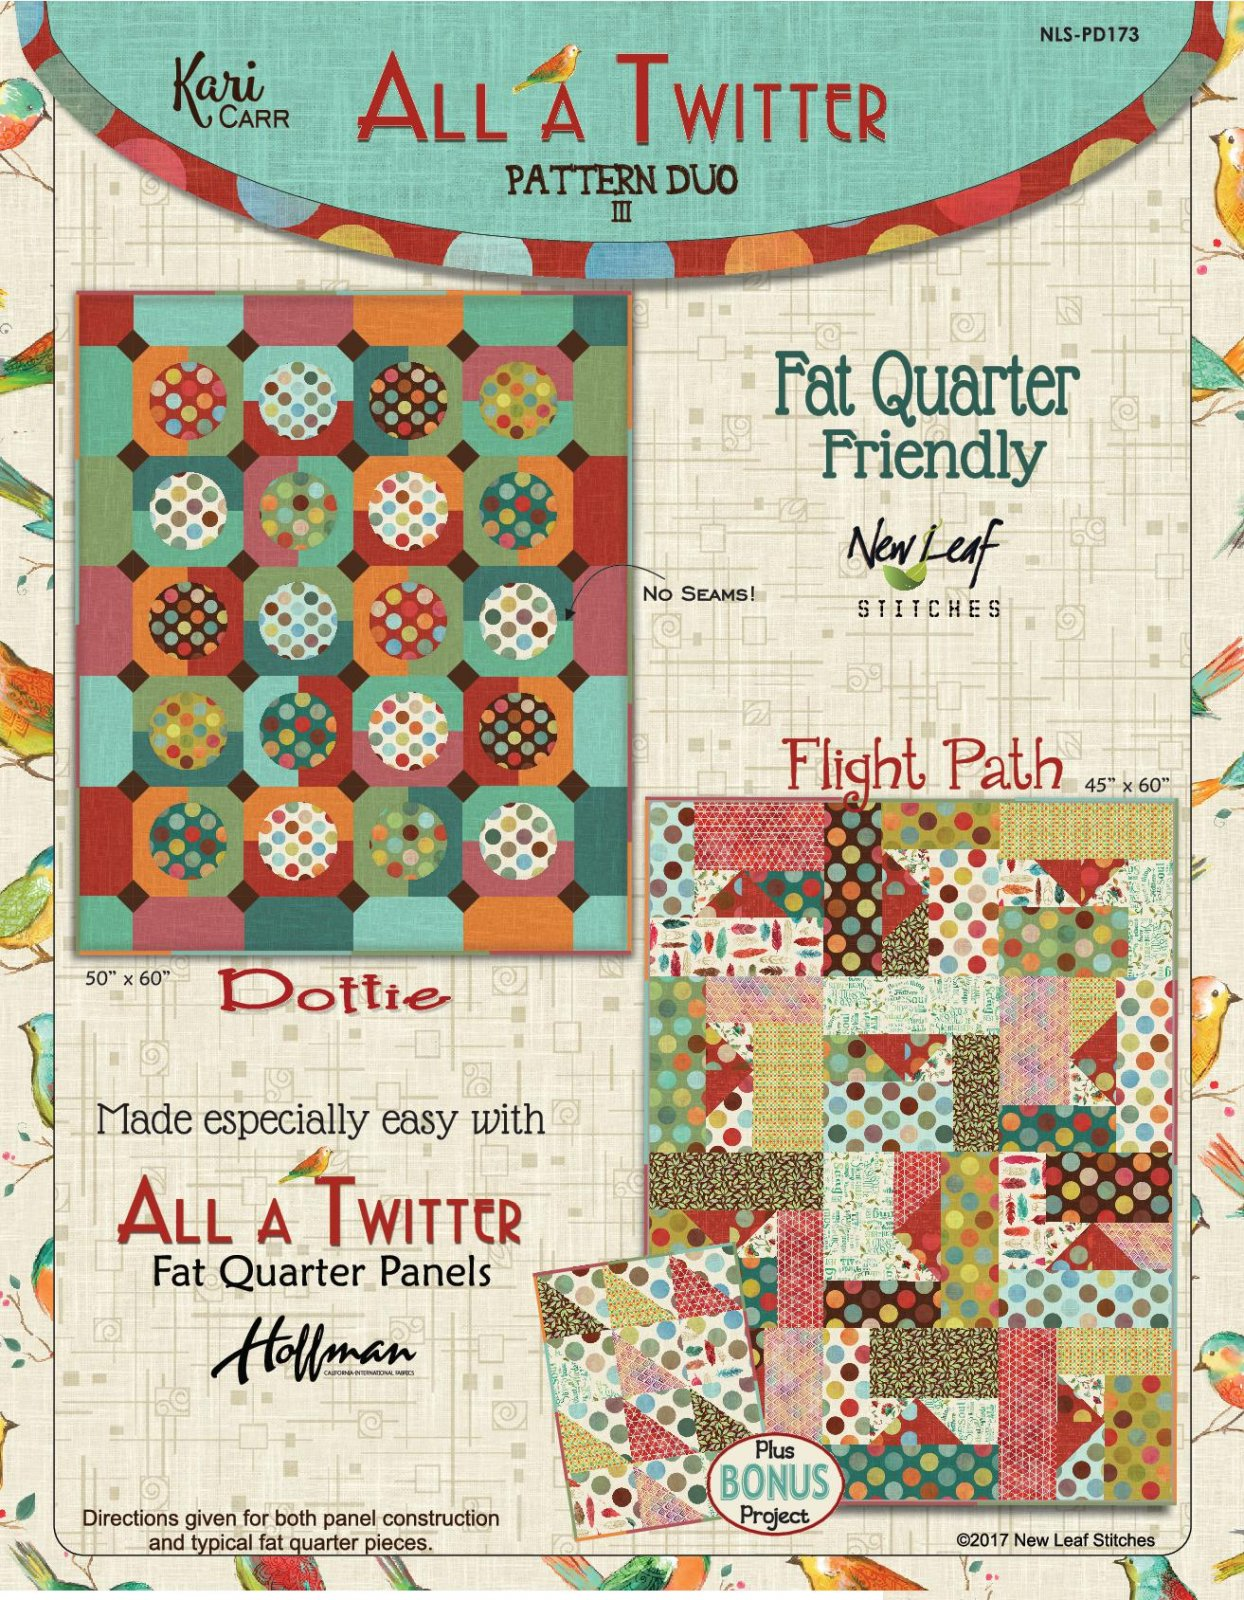 All a Twitter: Pattern Duo III